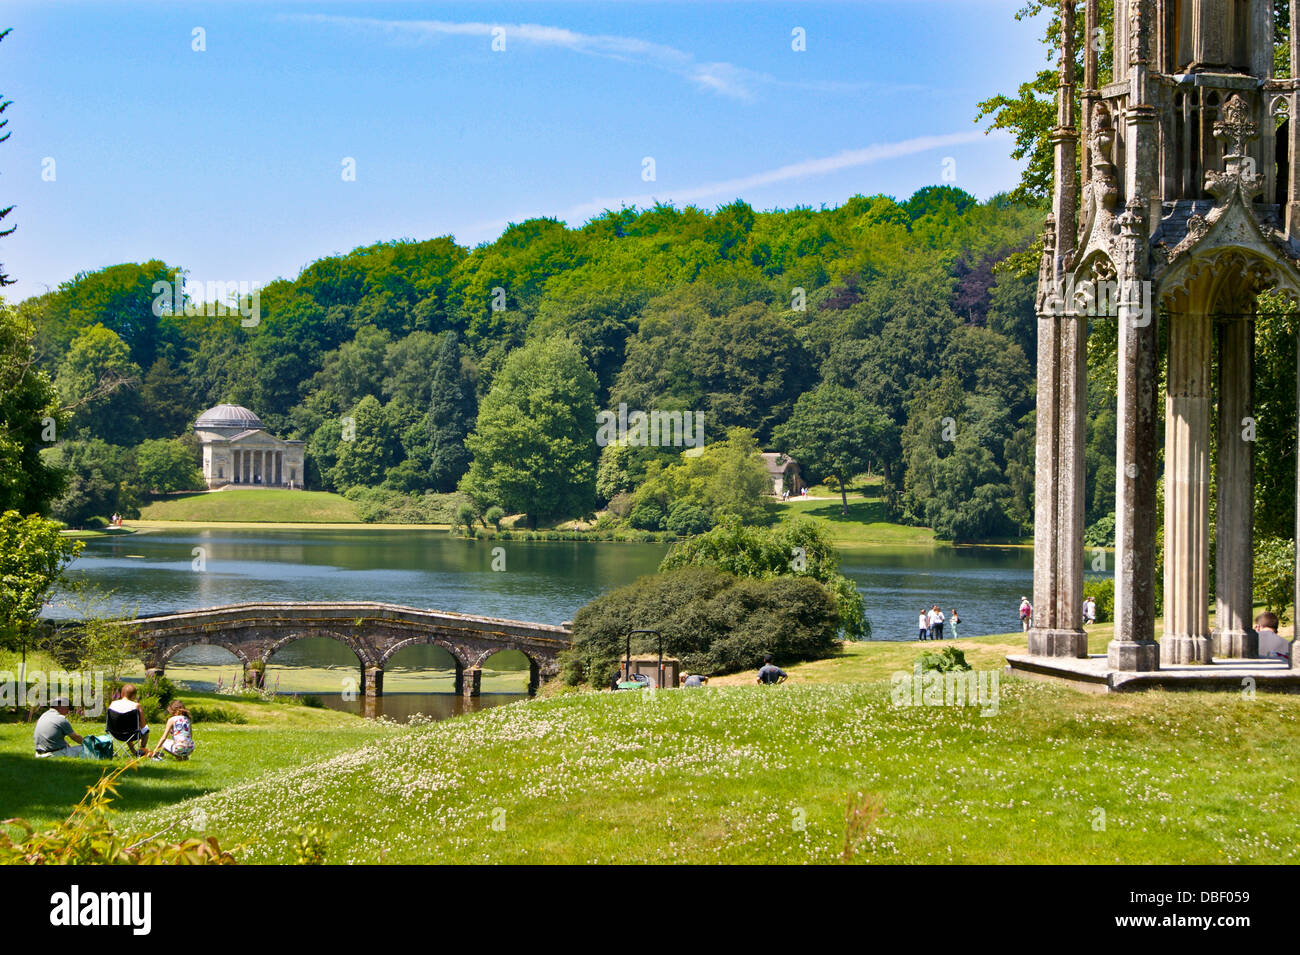 The Pantheon, by Henry Flitcroft, c18, and Bristol High Cross, Stourhead, Wiltshire, photographed from the public - Stock Image